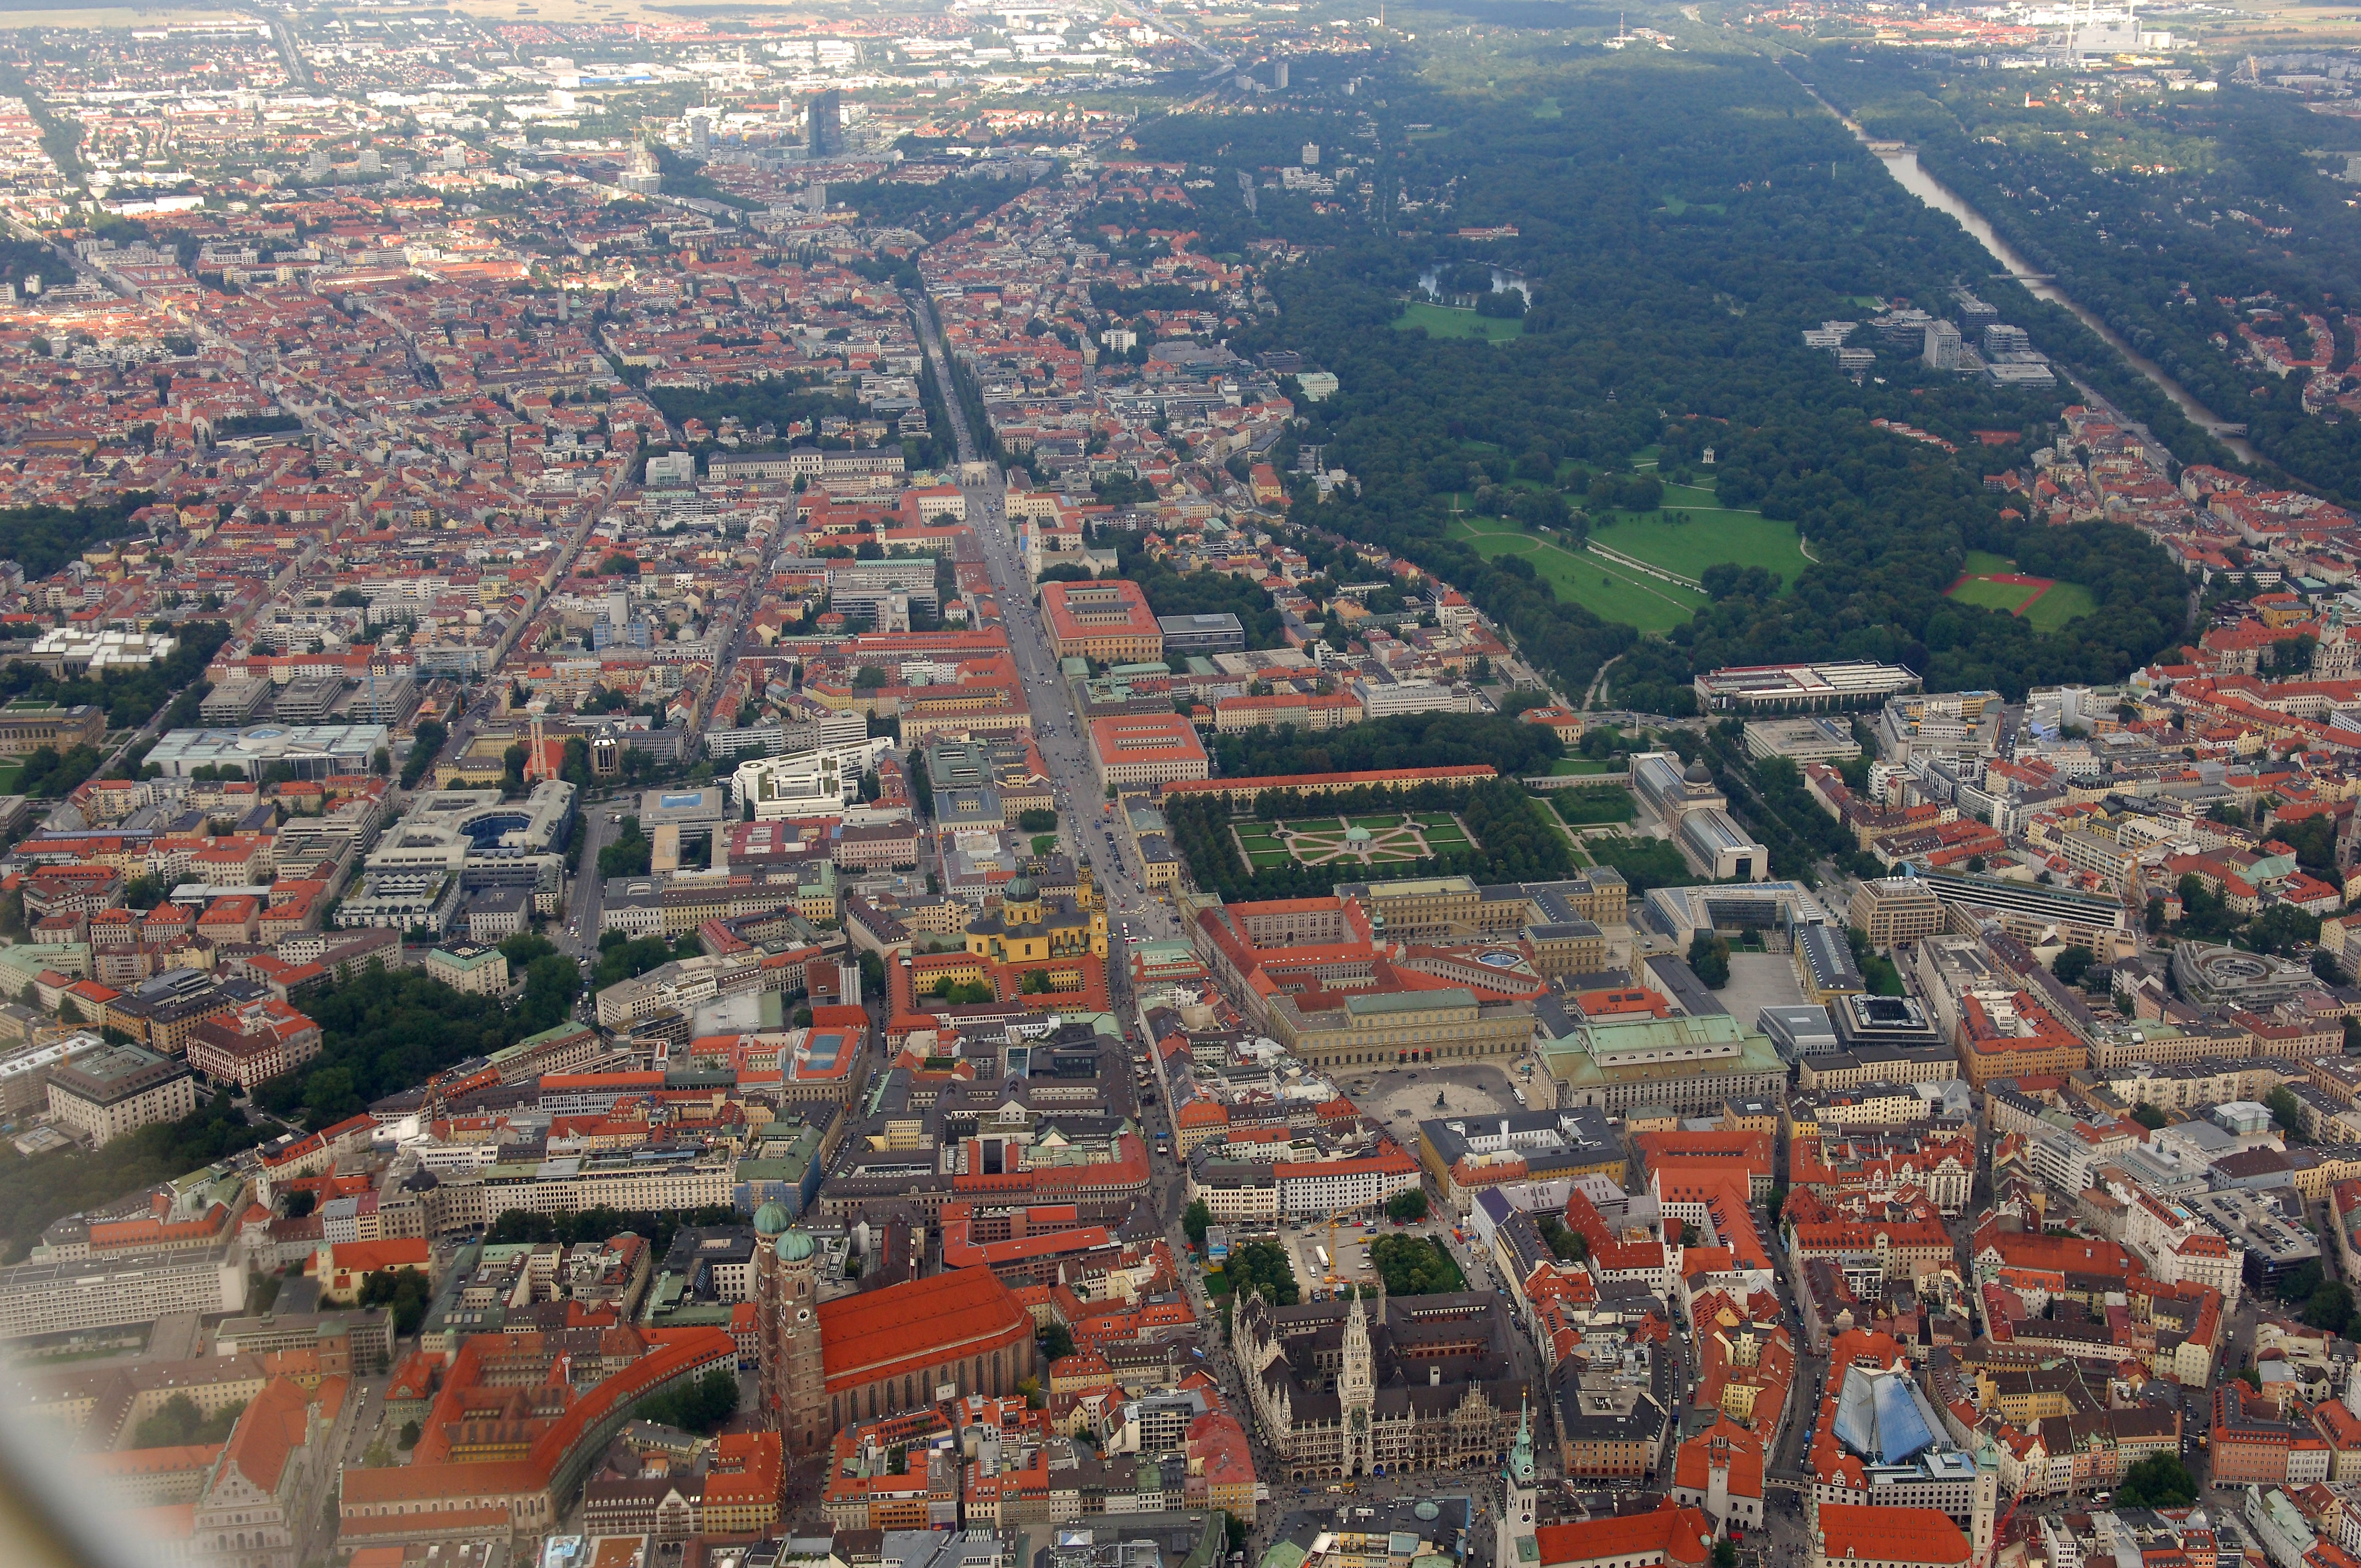 Munich Germany  city photos gallery : Description Aerial view of Munich